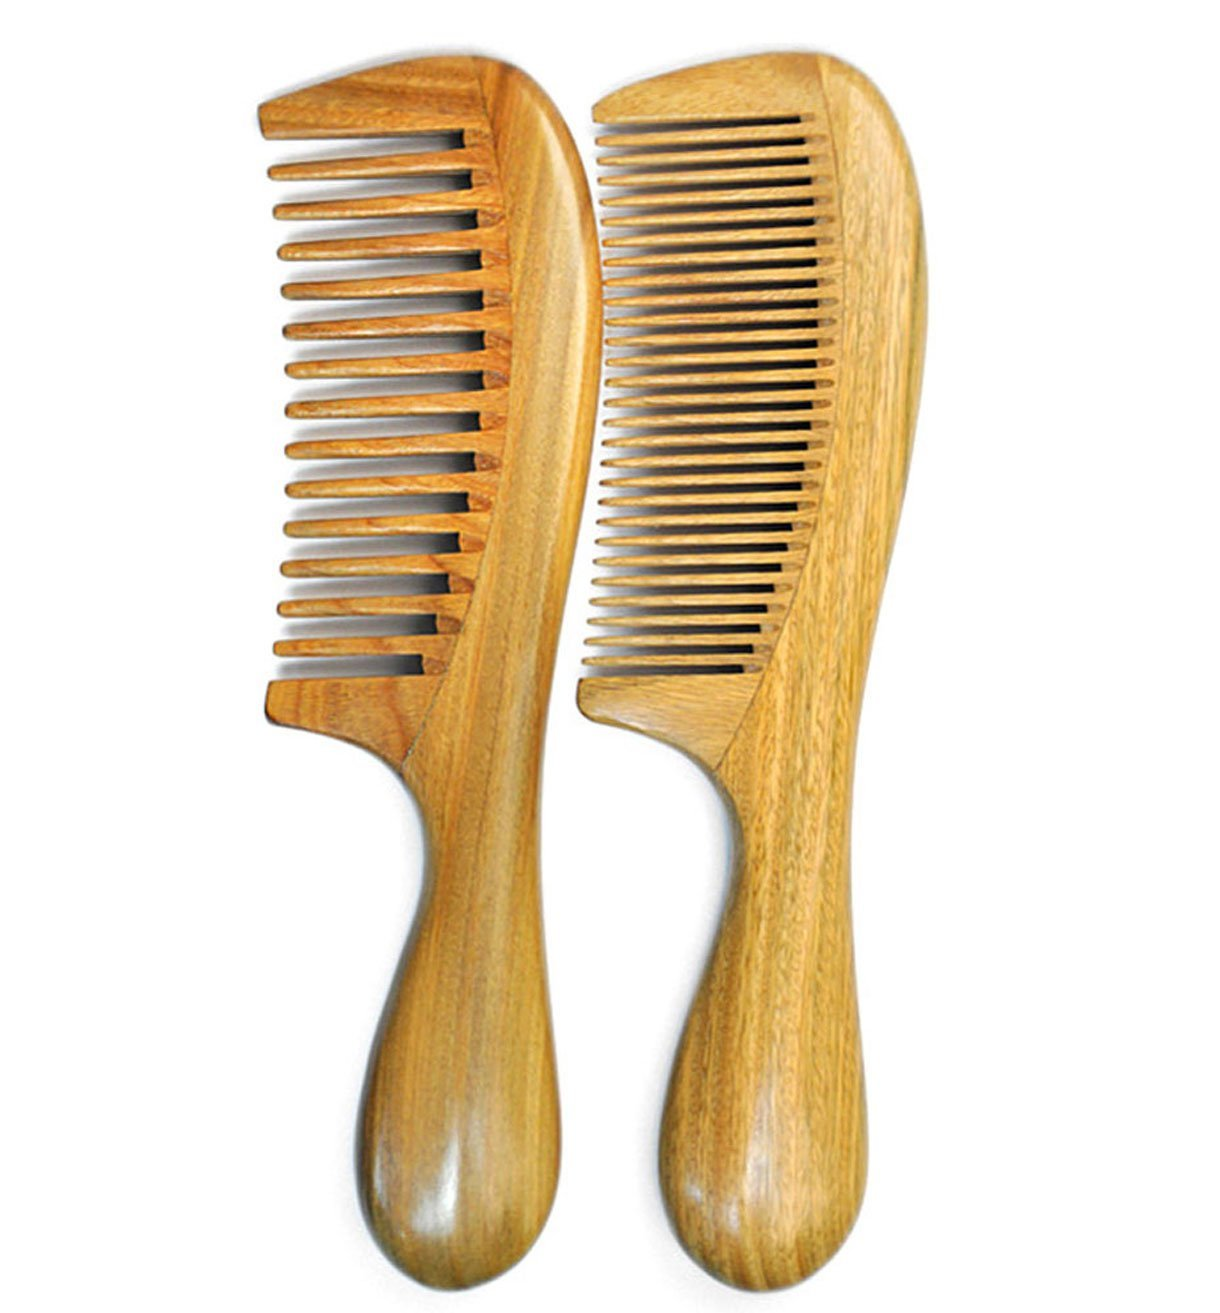 LiveZone Handmade Natural Green Sandalwood 2-Count(Minute Tooth and Wide Tooth Wood Comb) Hair Comb with Natural Wood Aromatic Scent ,with Handle